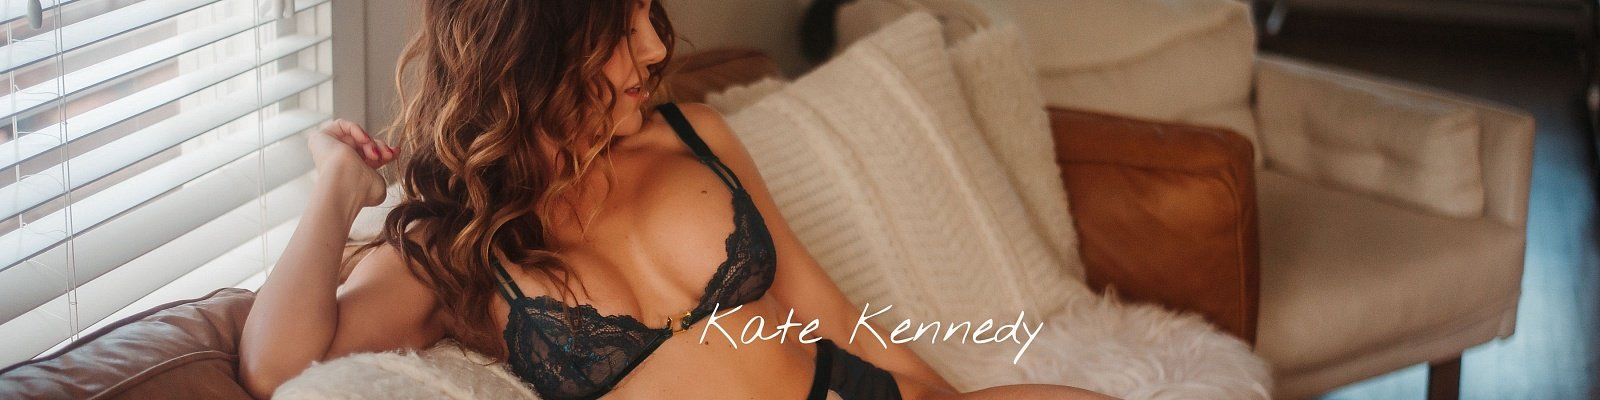 Kate Kennedy's Cover Photo